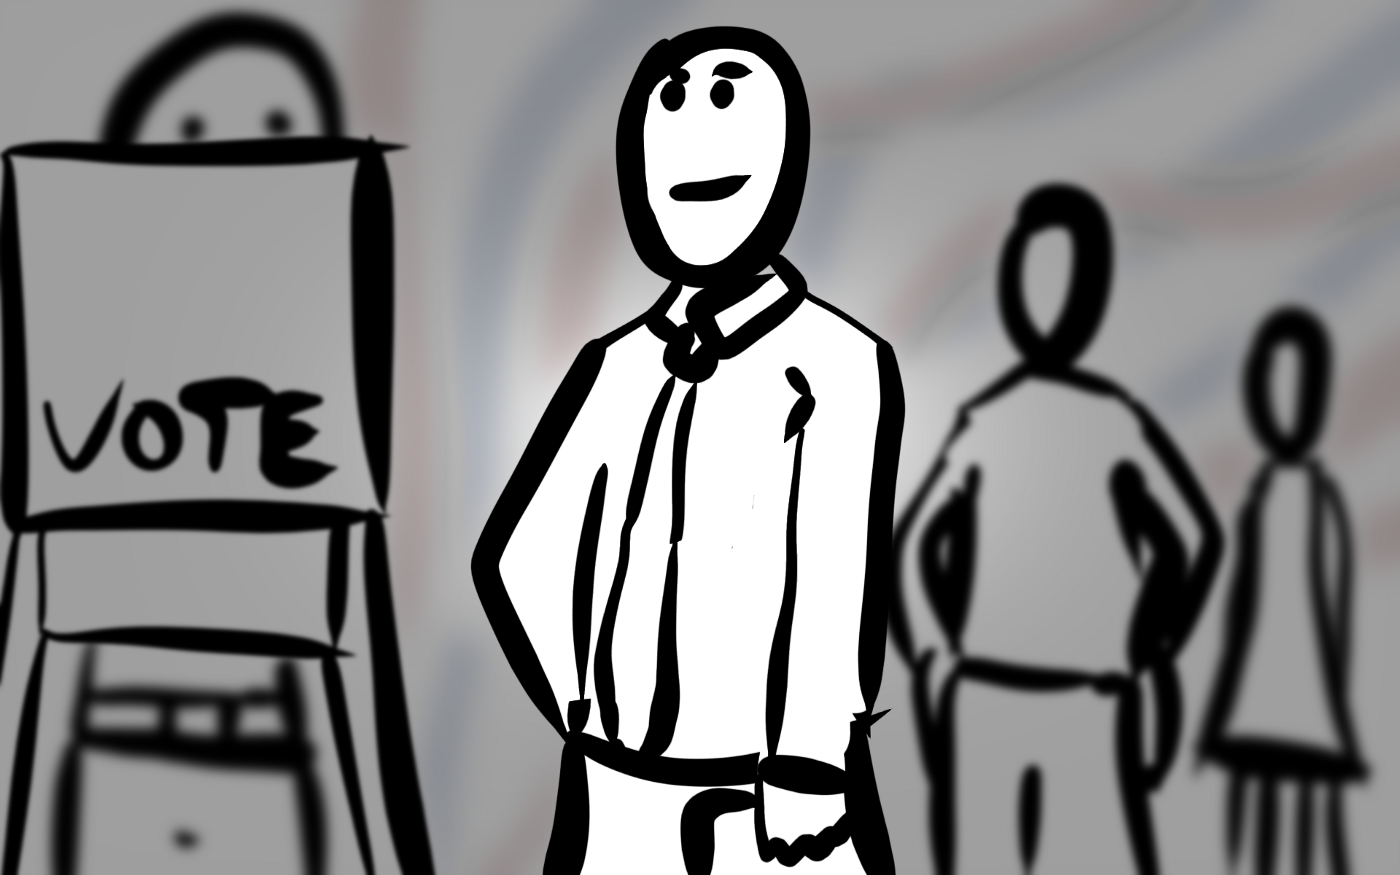 Stylistic illustration of person waiting in line to vote.